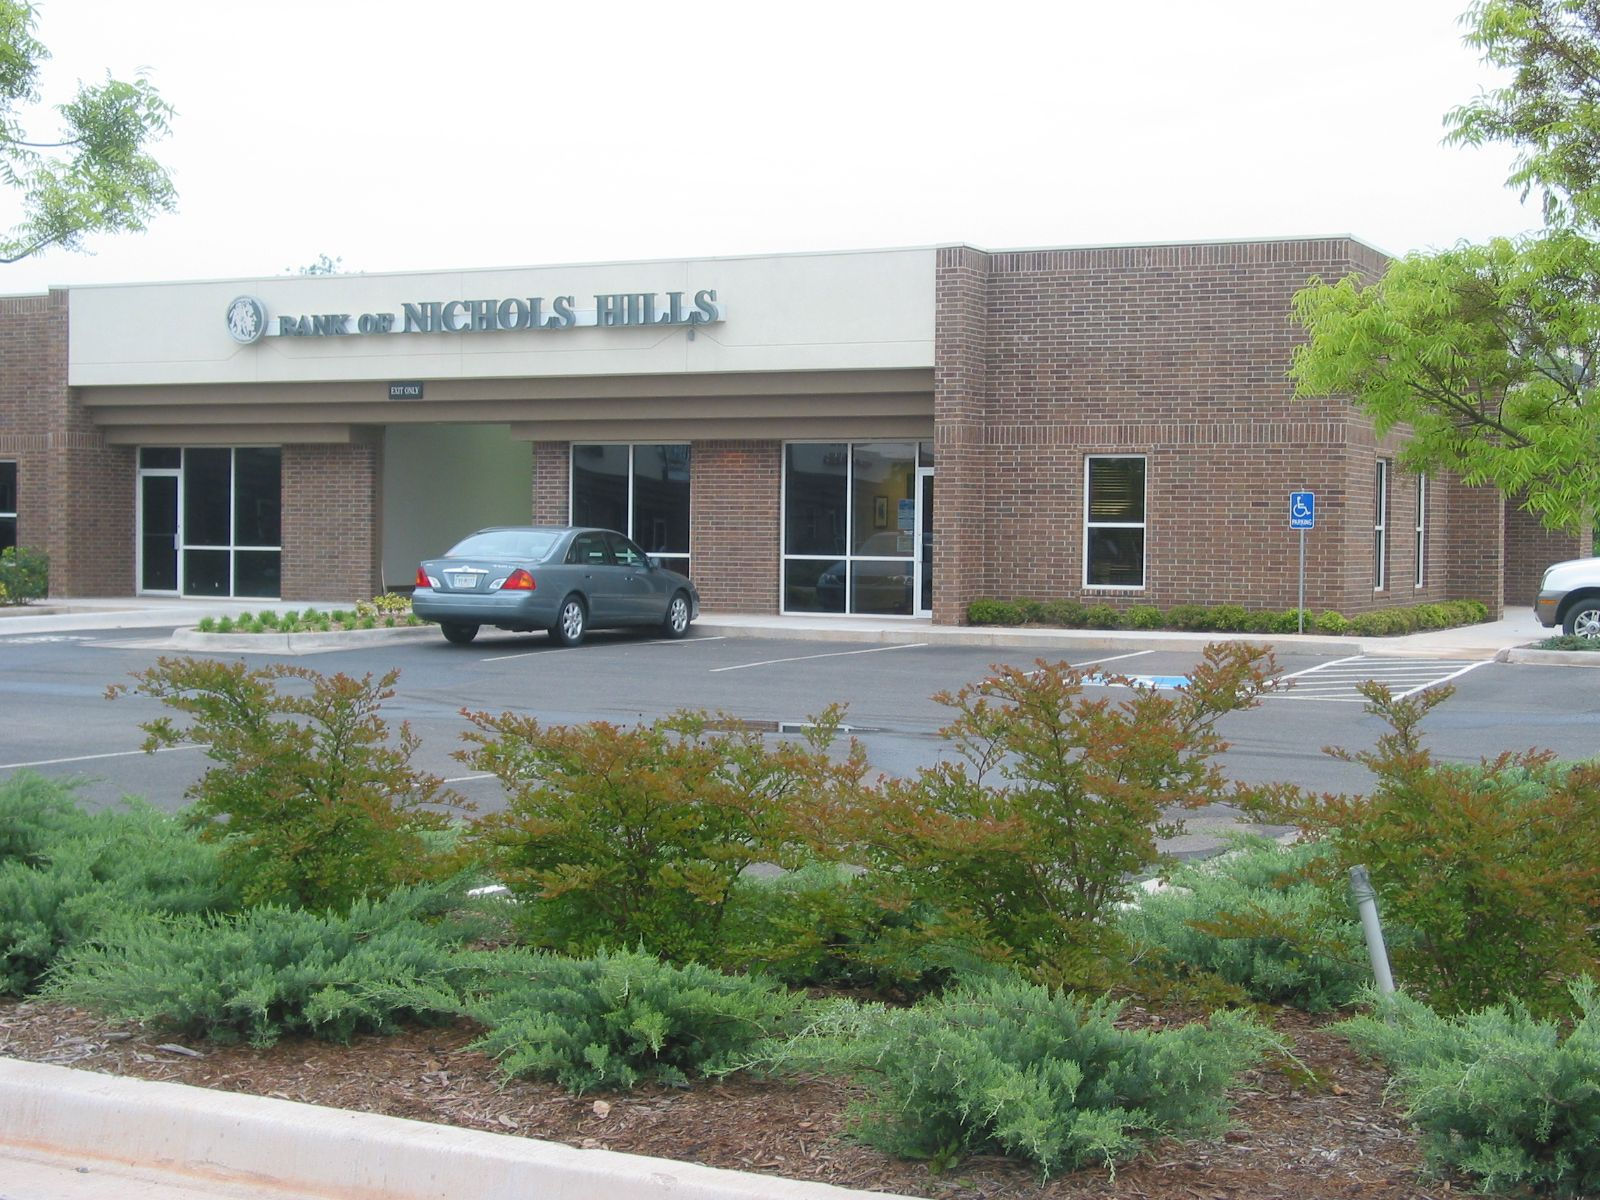 FT-Bank of Nichols Hills-Edmond